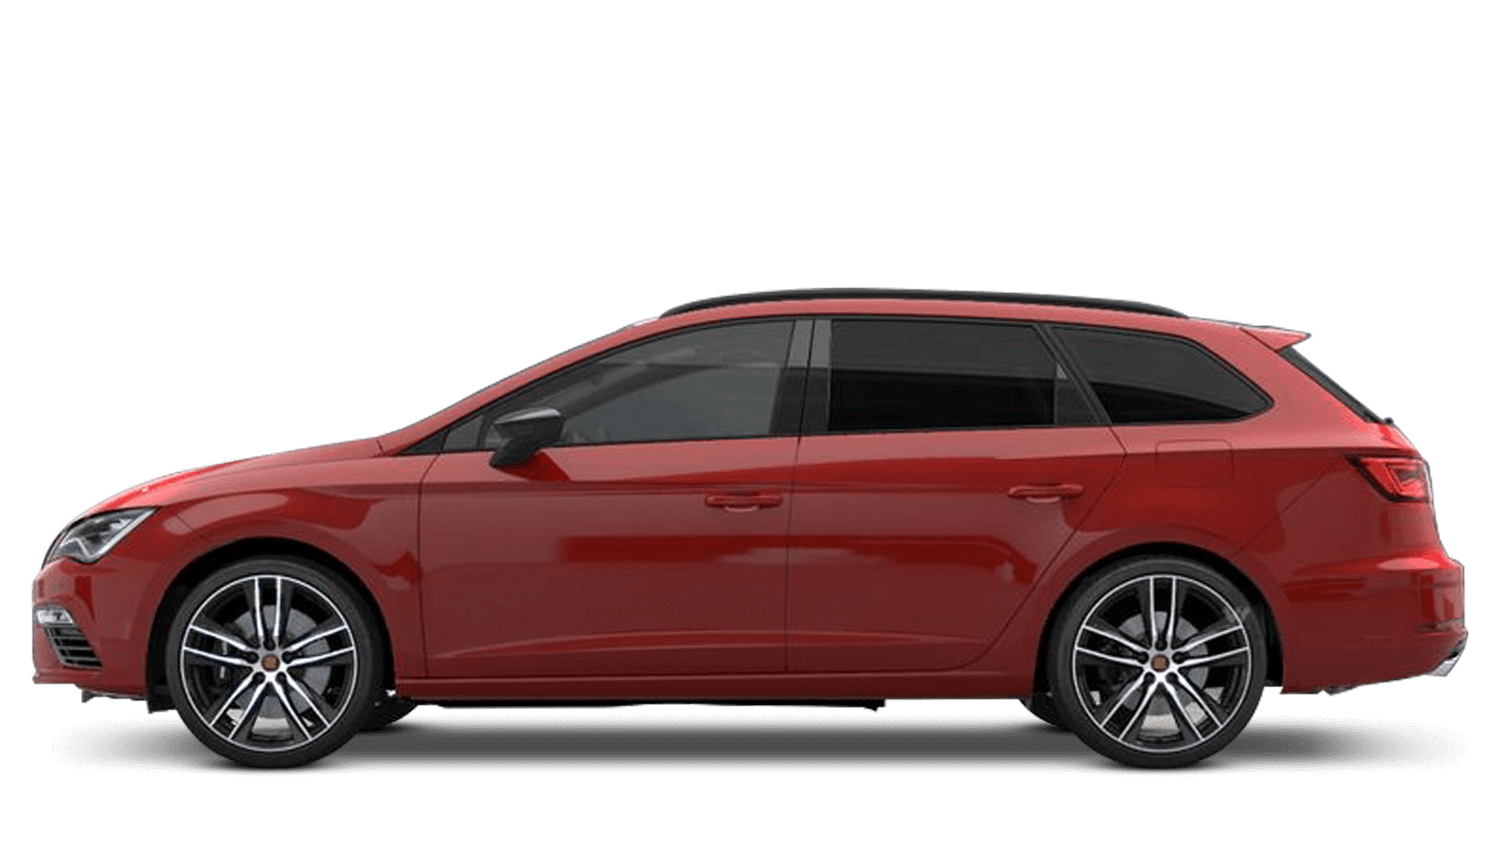 Emocion Red (Non-Metallic) SEAT Leon Estate Cupra